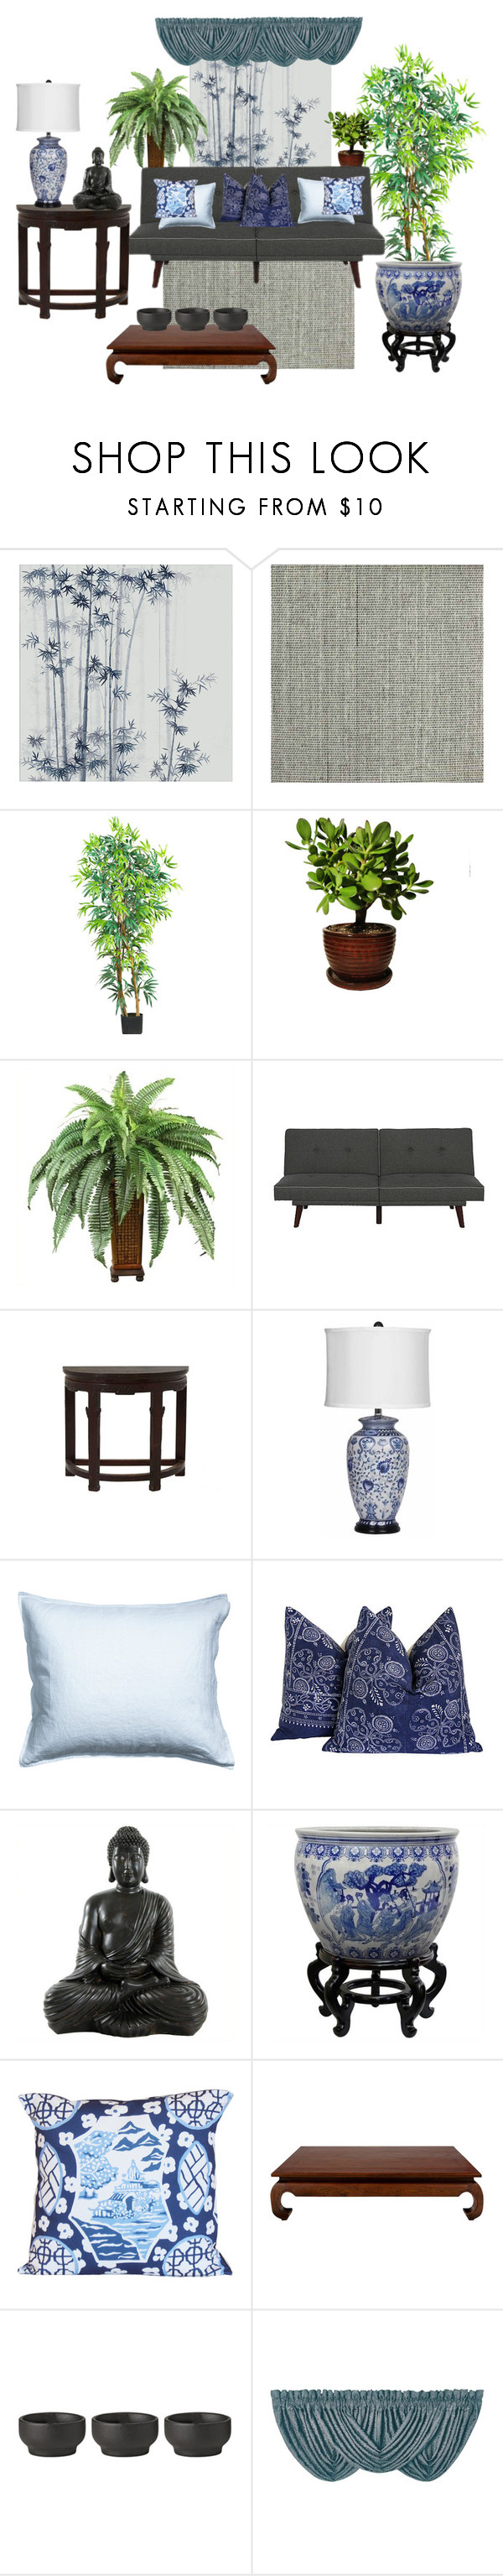 """asian decor"" by artgazzm on Polyvore featuring interior, interiors, interior design, Zuhause, home decor, interior decorating, Misha, Nearly Natural, Dorel Asia und Jayson Home"